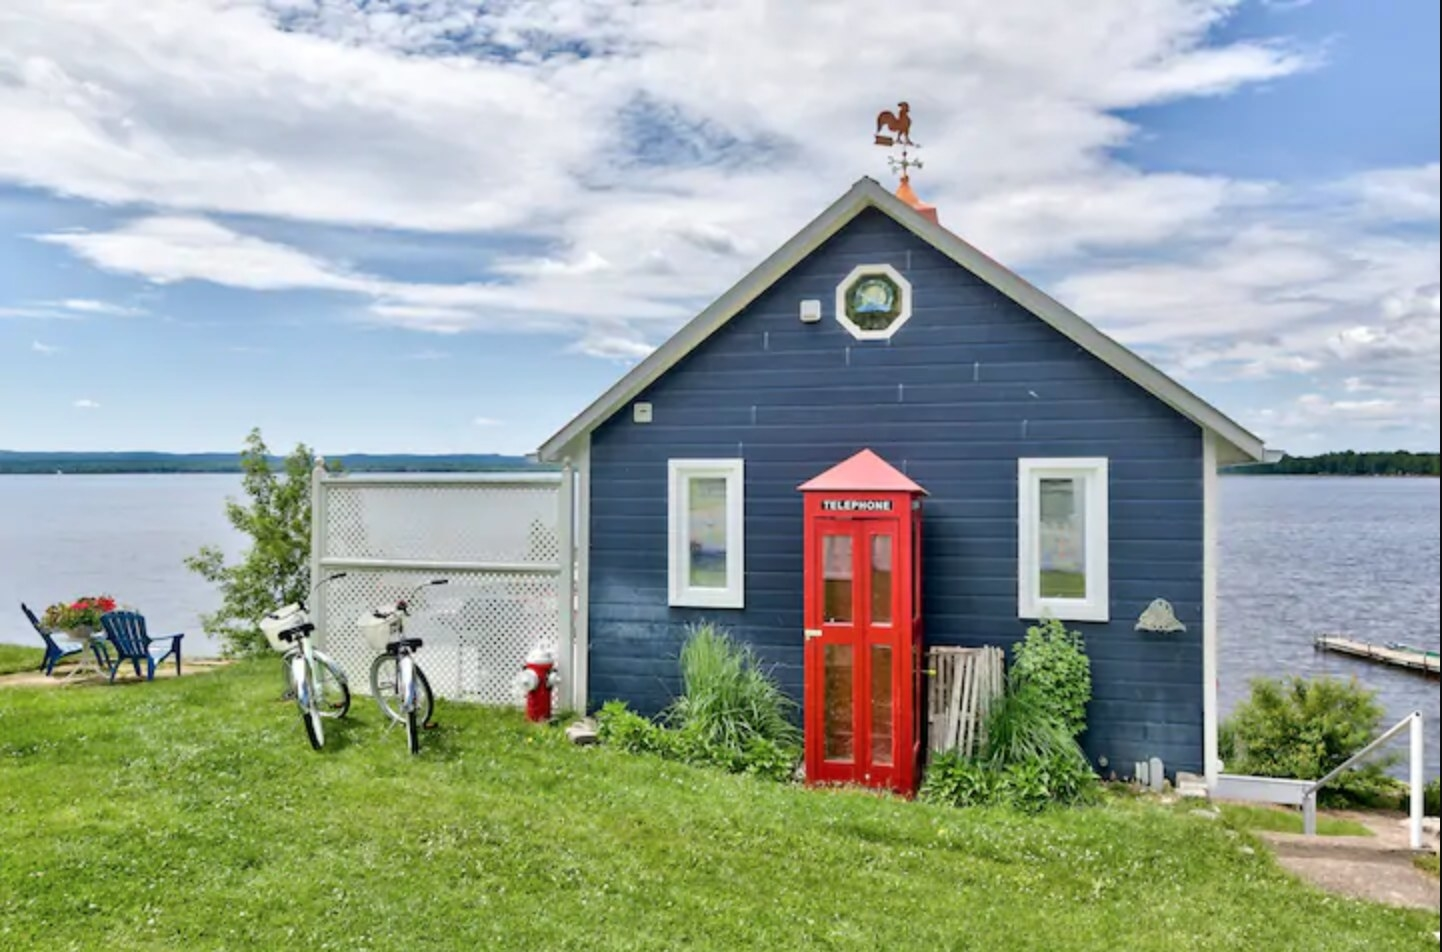 Two bikes sit on the lawn in front of blue house on the lake that is decorated with a red London-style telephone booth.